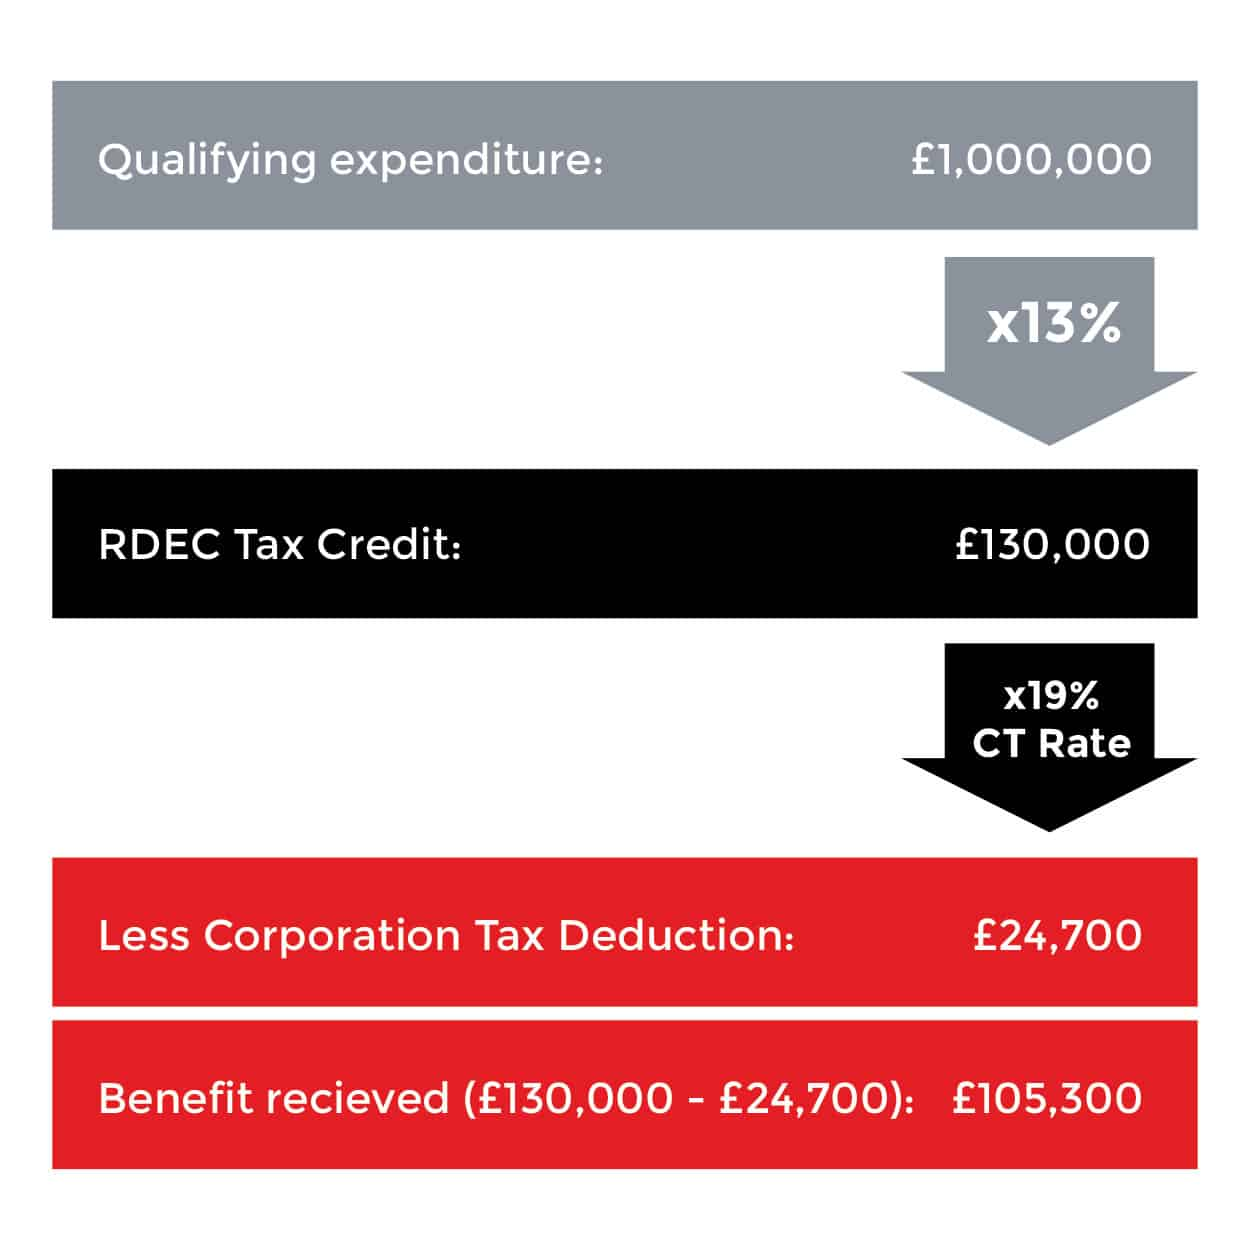 How Does the Benefit Work for the RDEC Scheme?